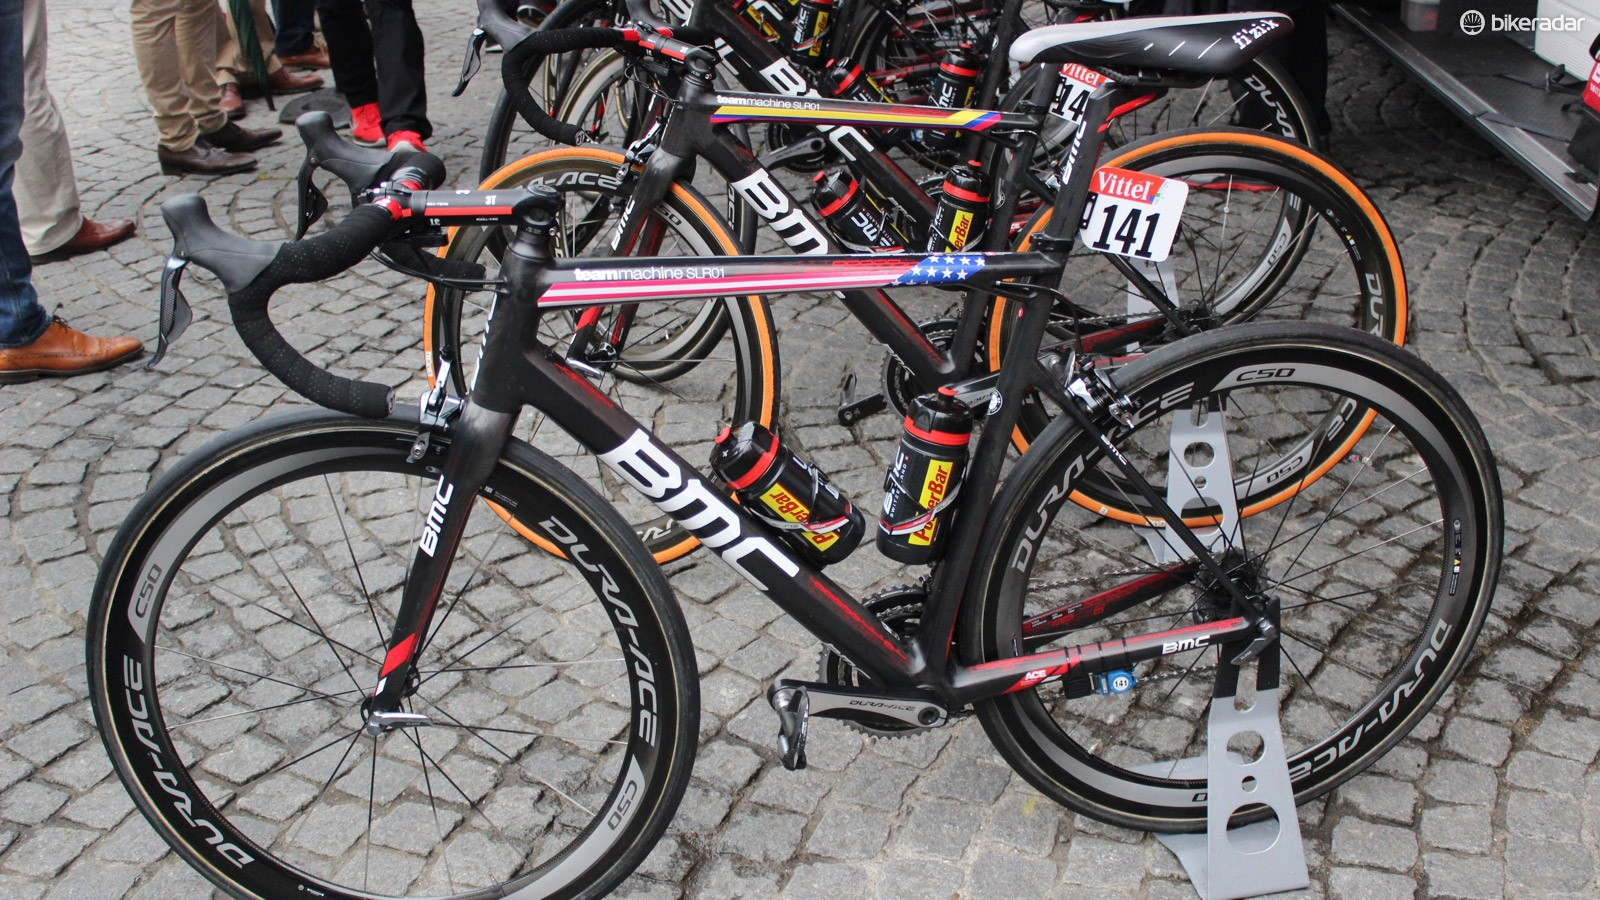 BMC riders opted for the SLR01 road race bike over the GF01 endurance bike - even on stage 5